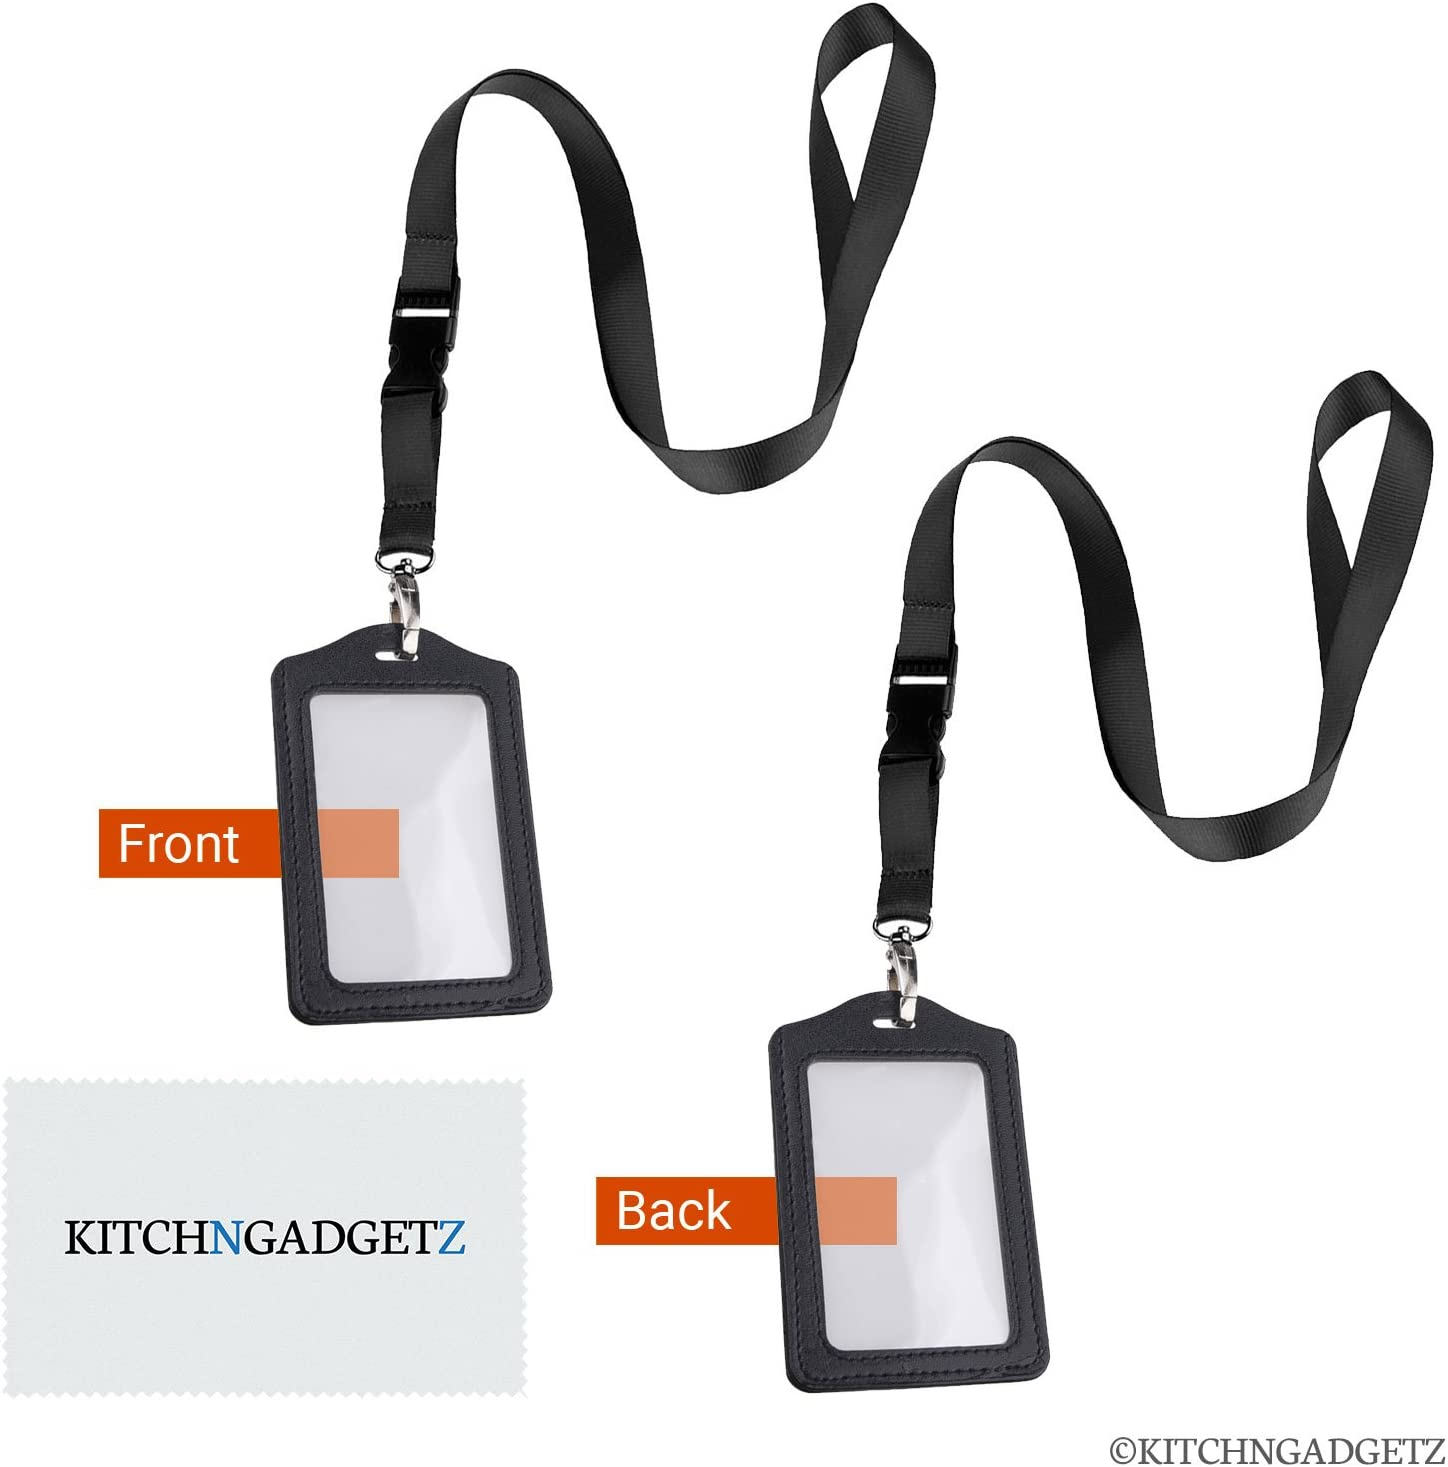 Neck Lanyards with Faux Leather Badge Holder, 2 Pack - Strong Oval Hook, Quick Release Tether - Perfect for Trade Shows, ID Badges, Keys, etc. - Heavy Duty Nylon - Shield Tech Retail Package